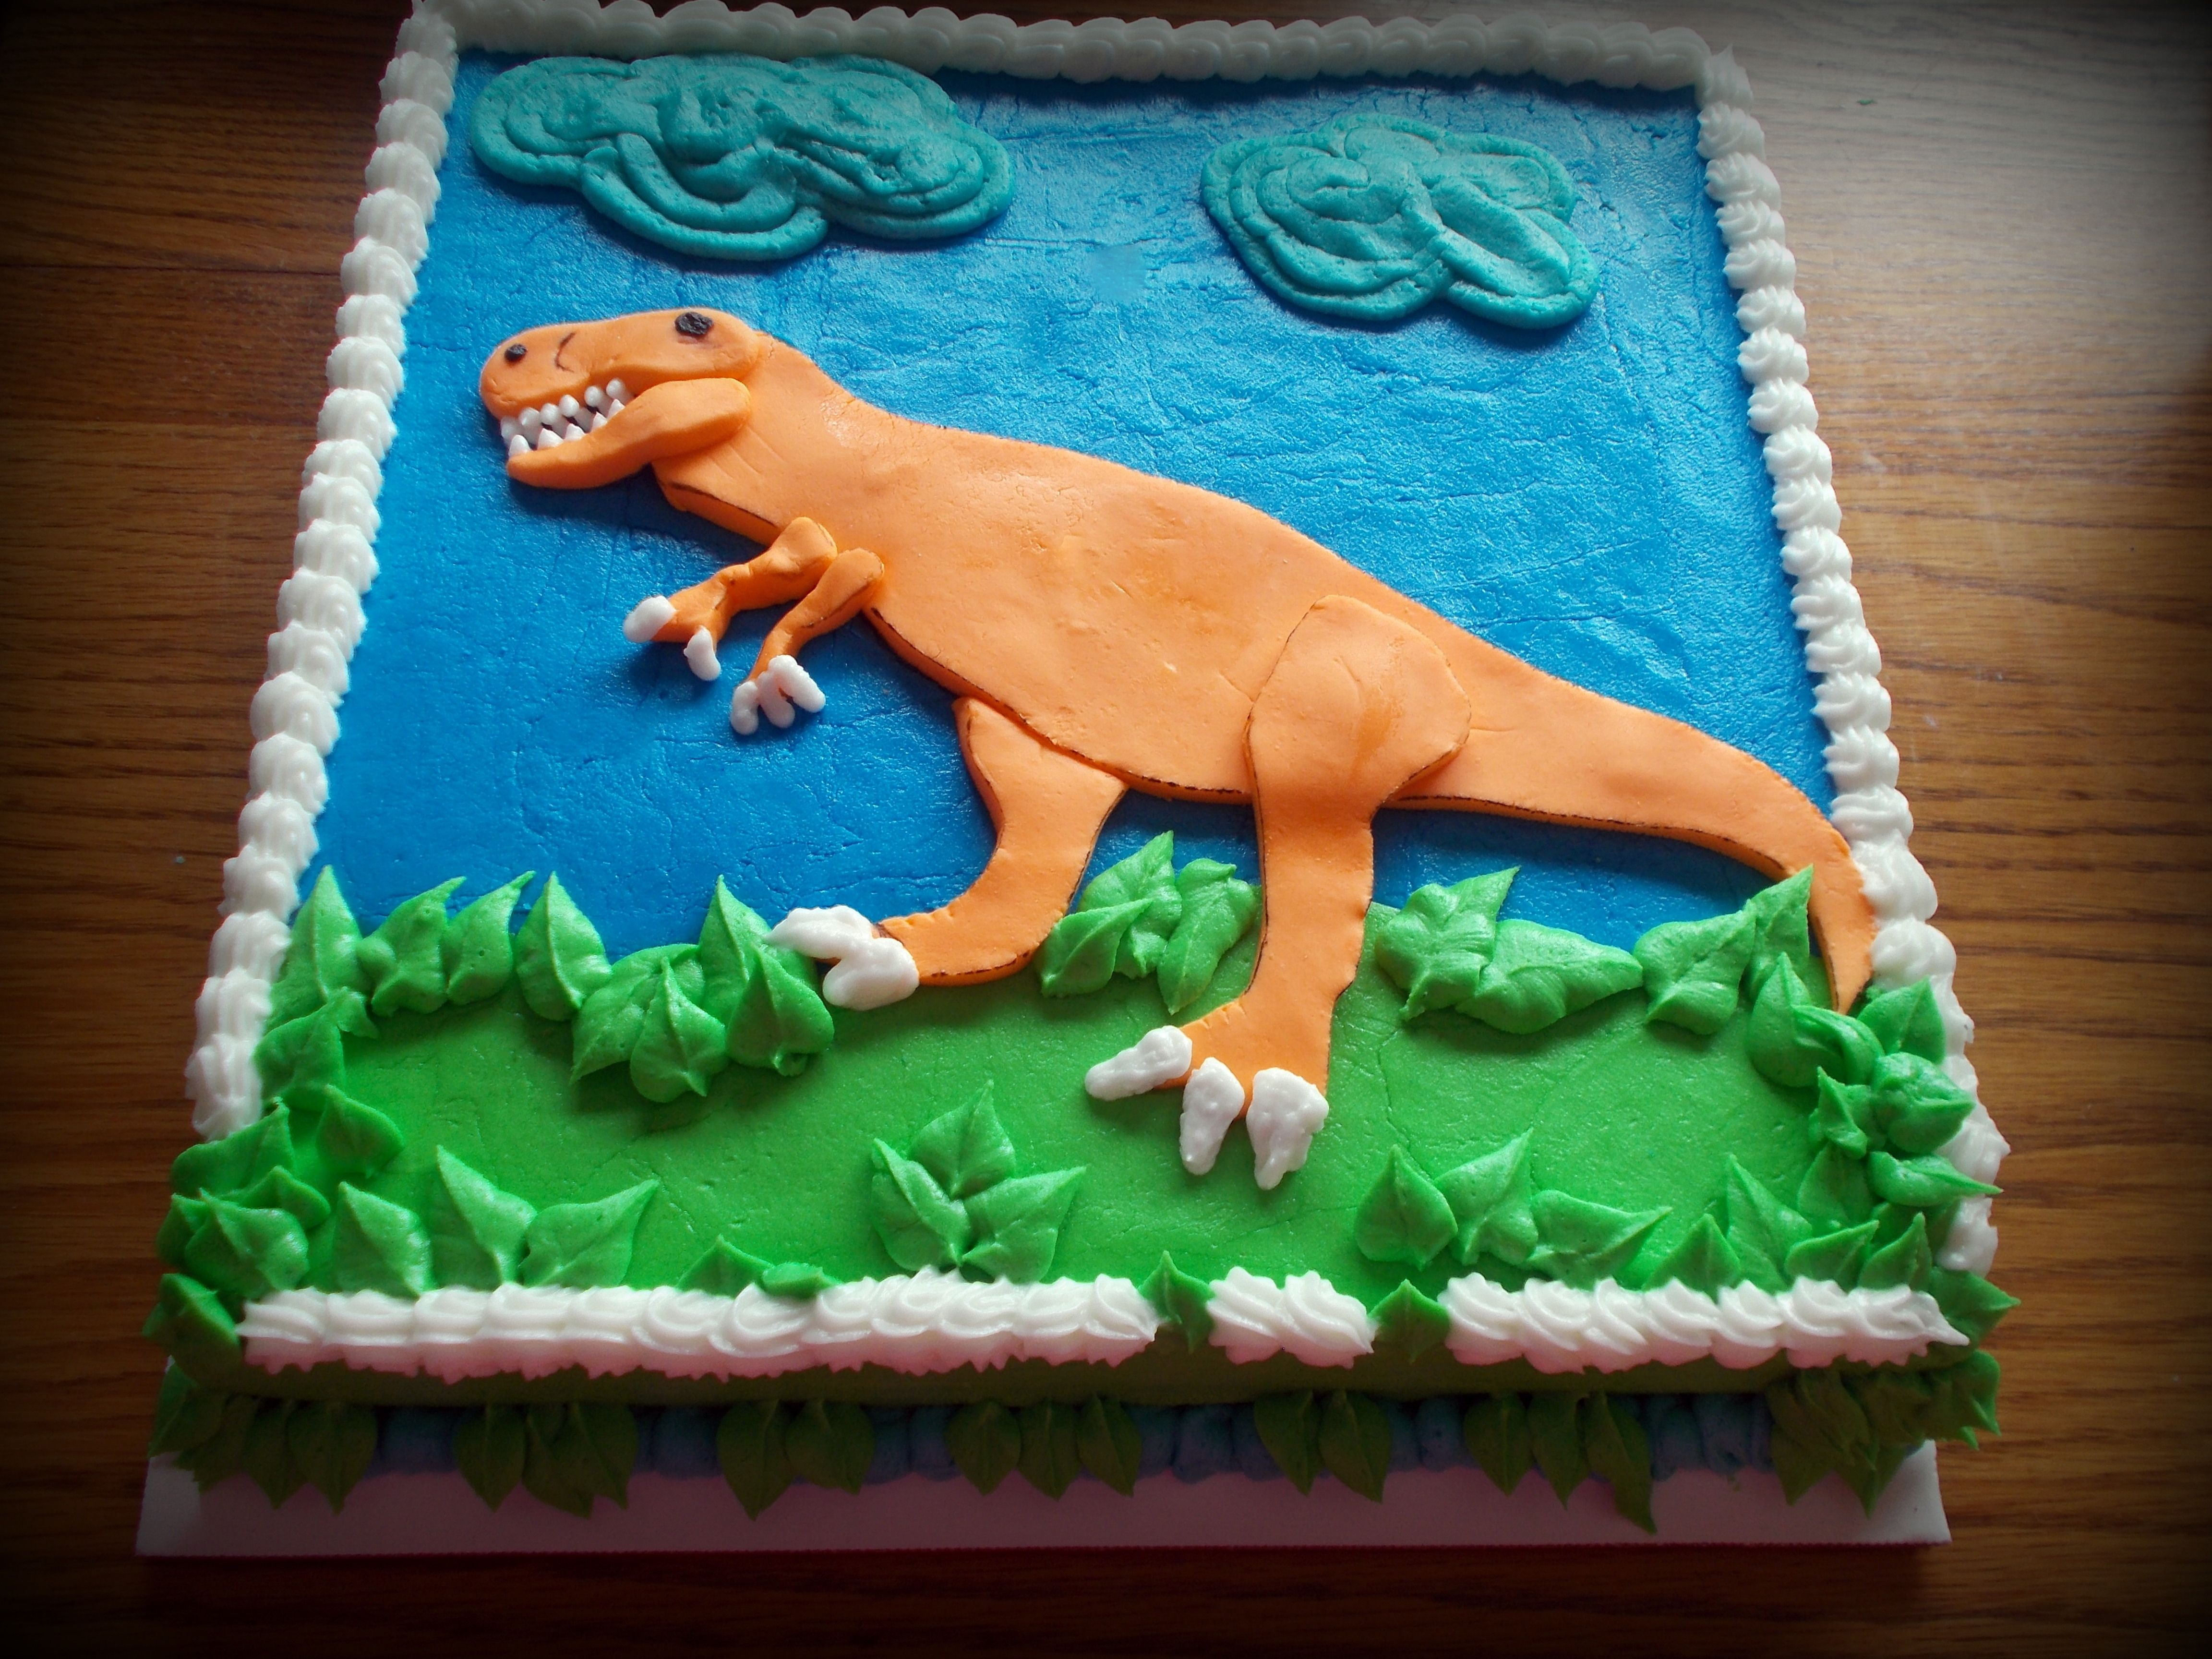 TRex cake Things Ive created Pinterest Cake Birthdays and